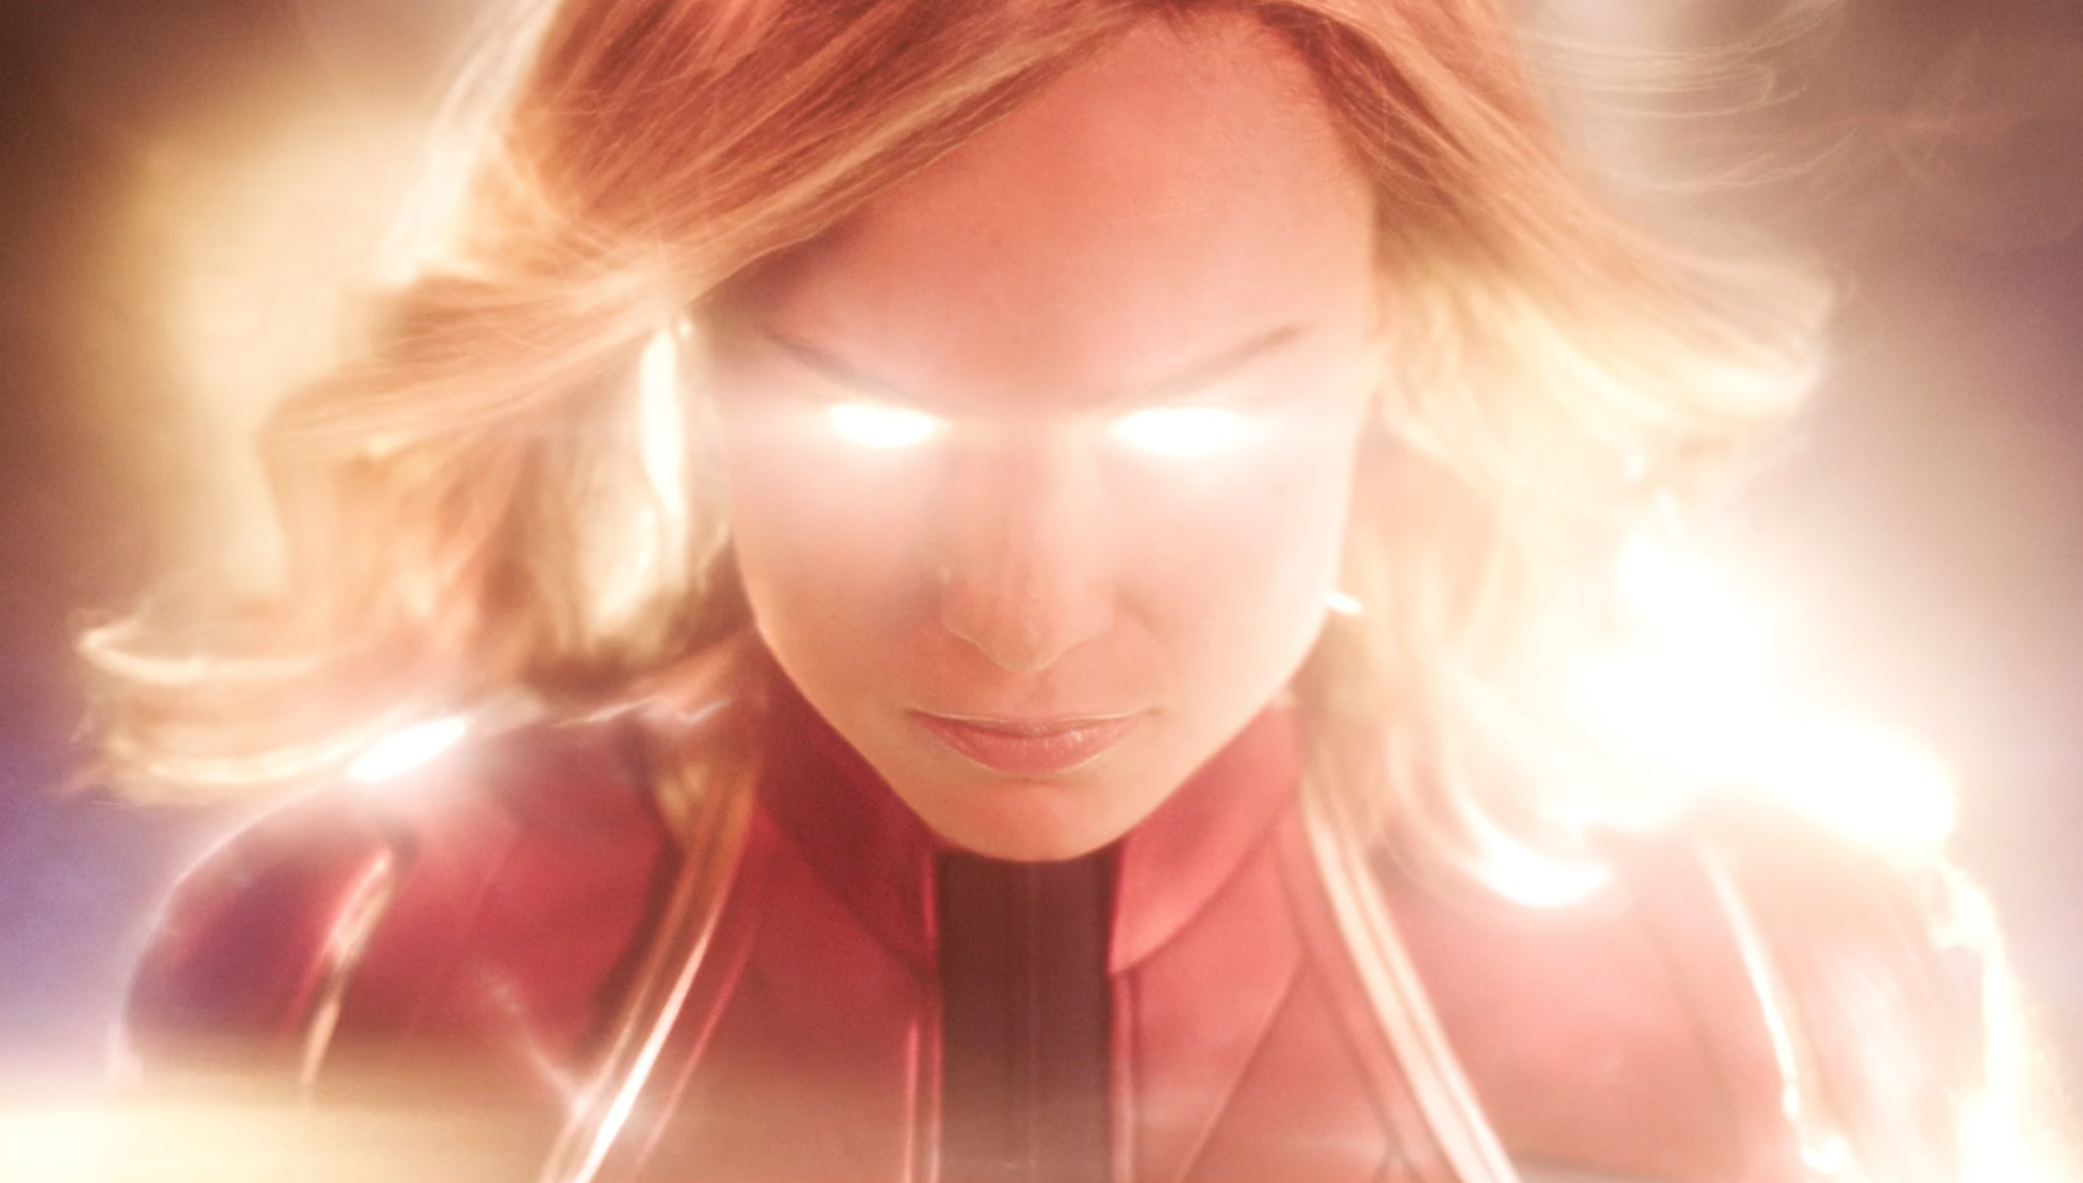 'Captain Marvel' Reveals to Audiences the Power of Showing Failure